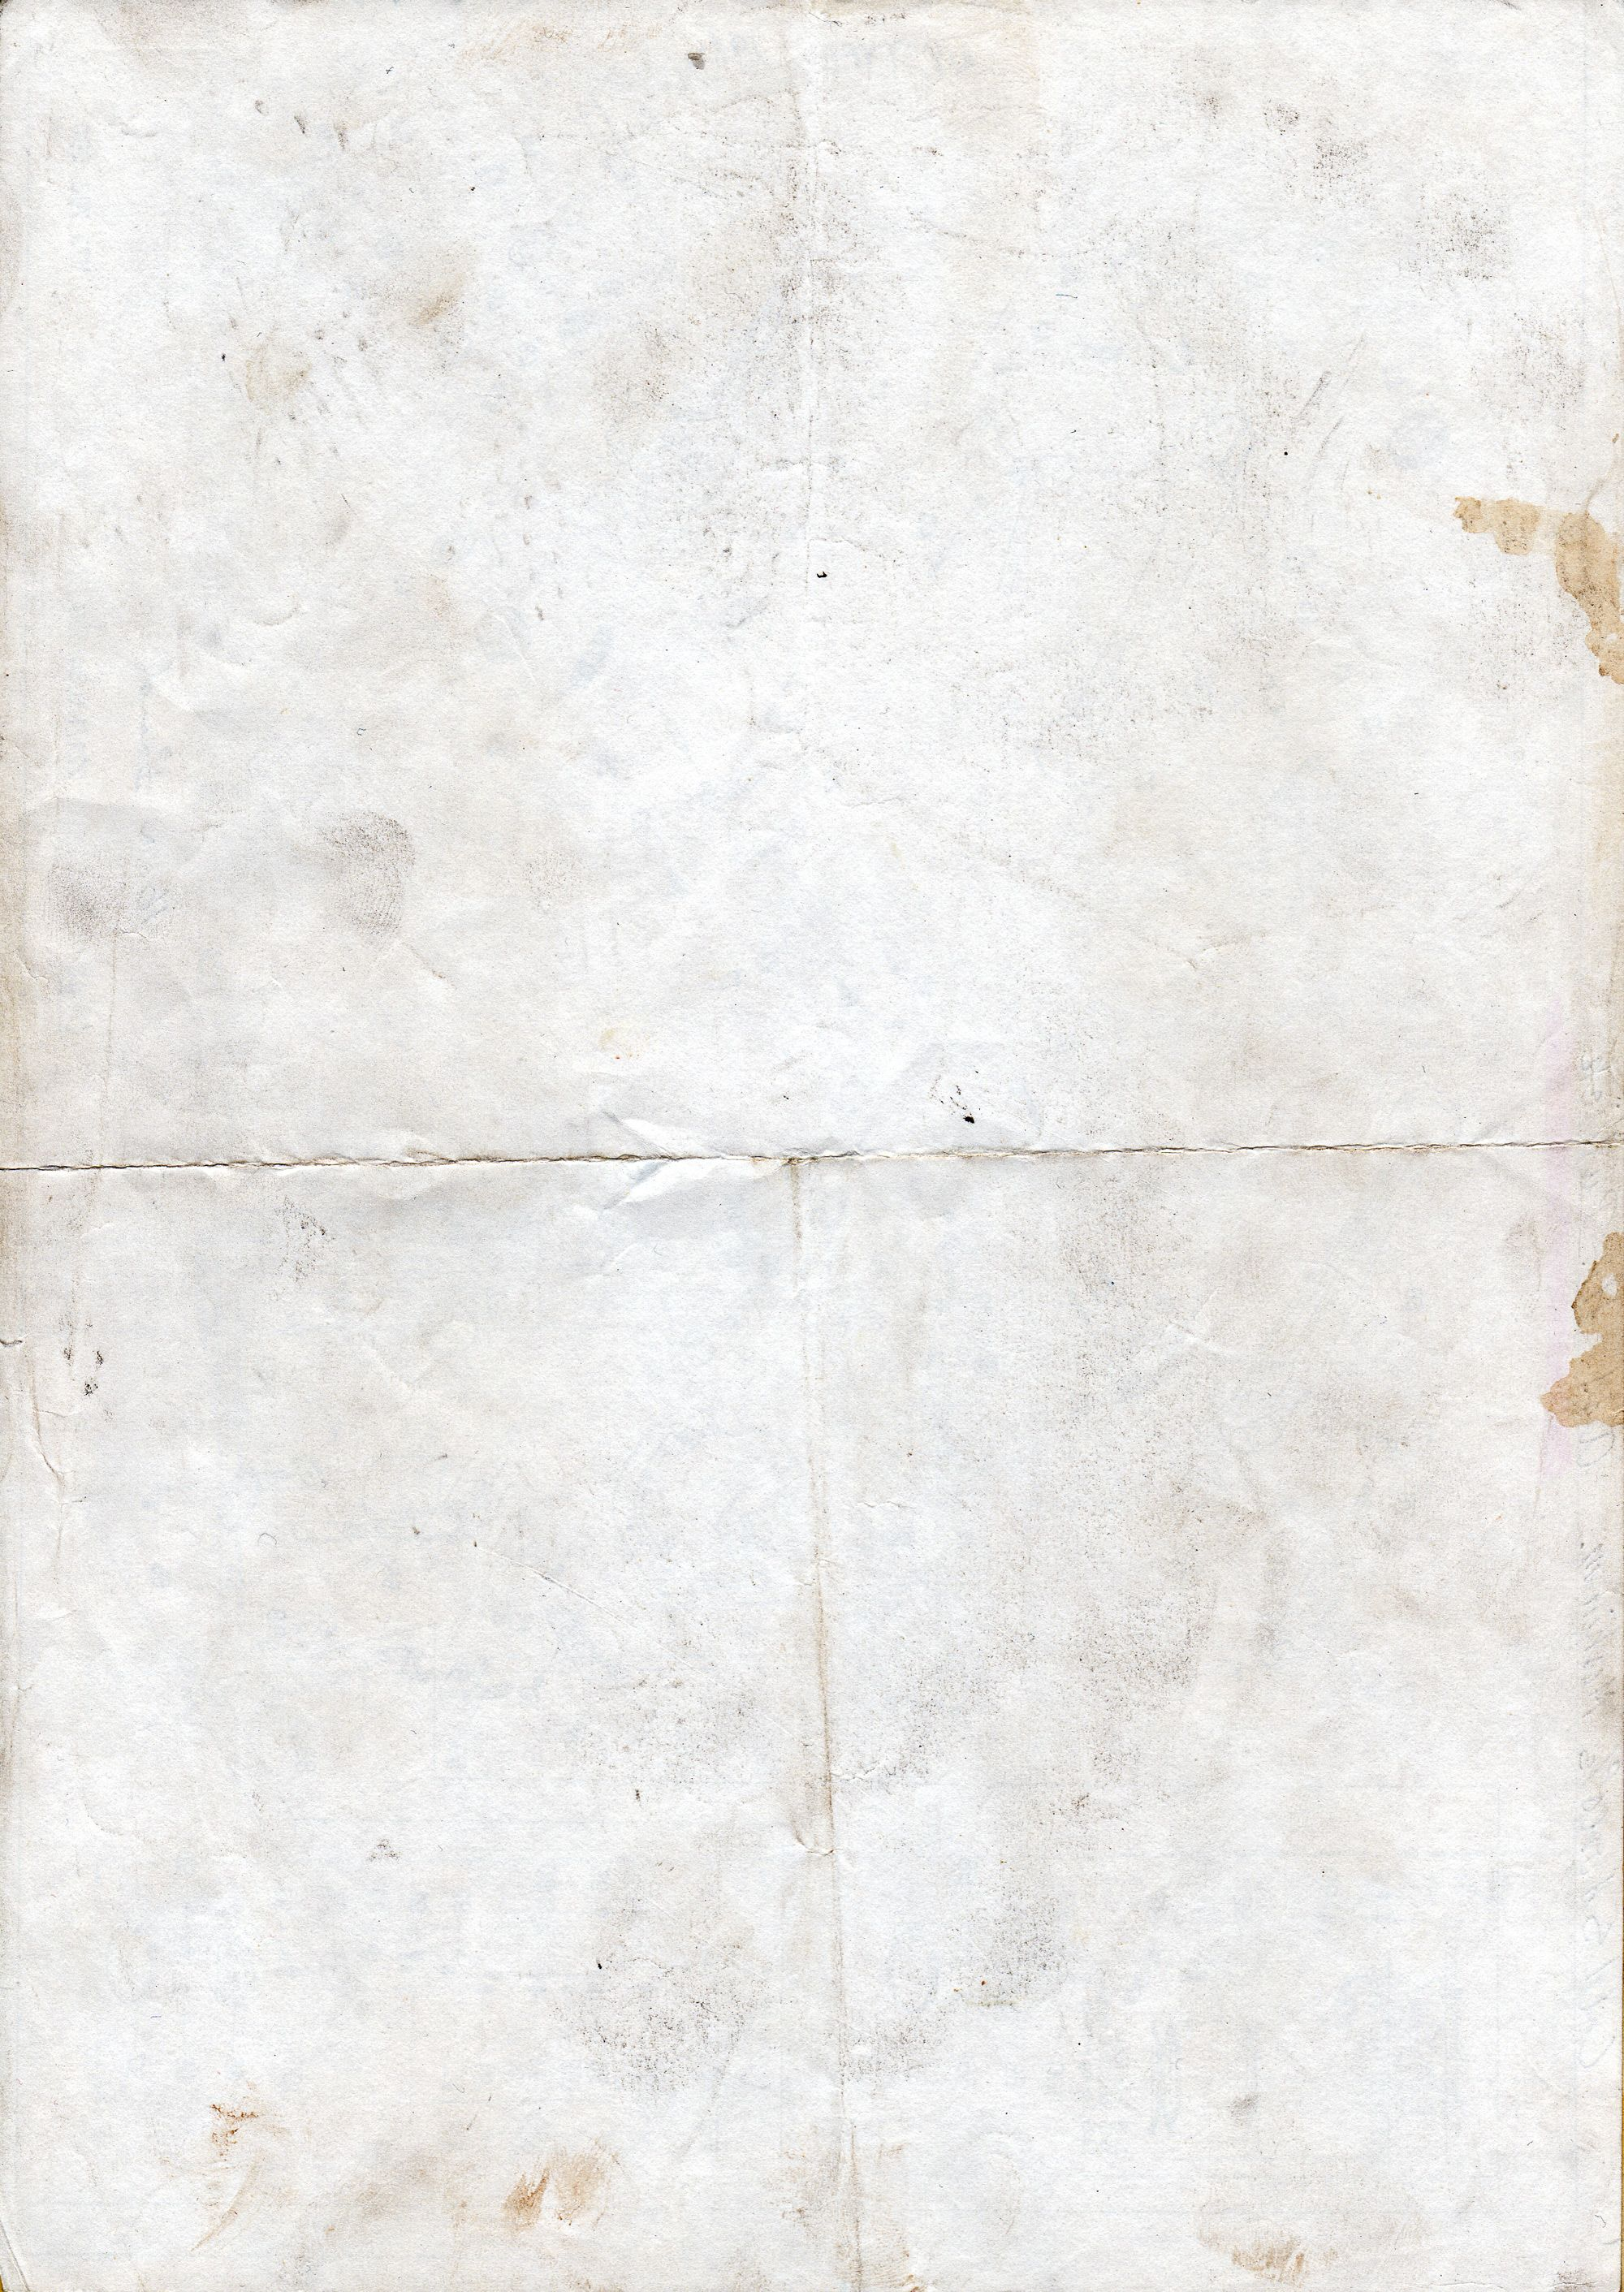 Grungy Paper Texture V 6 By Bashcorpo On Deviantart Free Paper